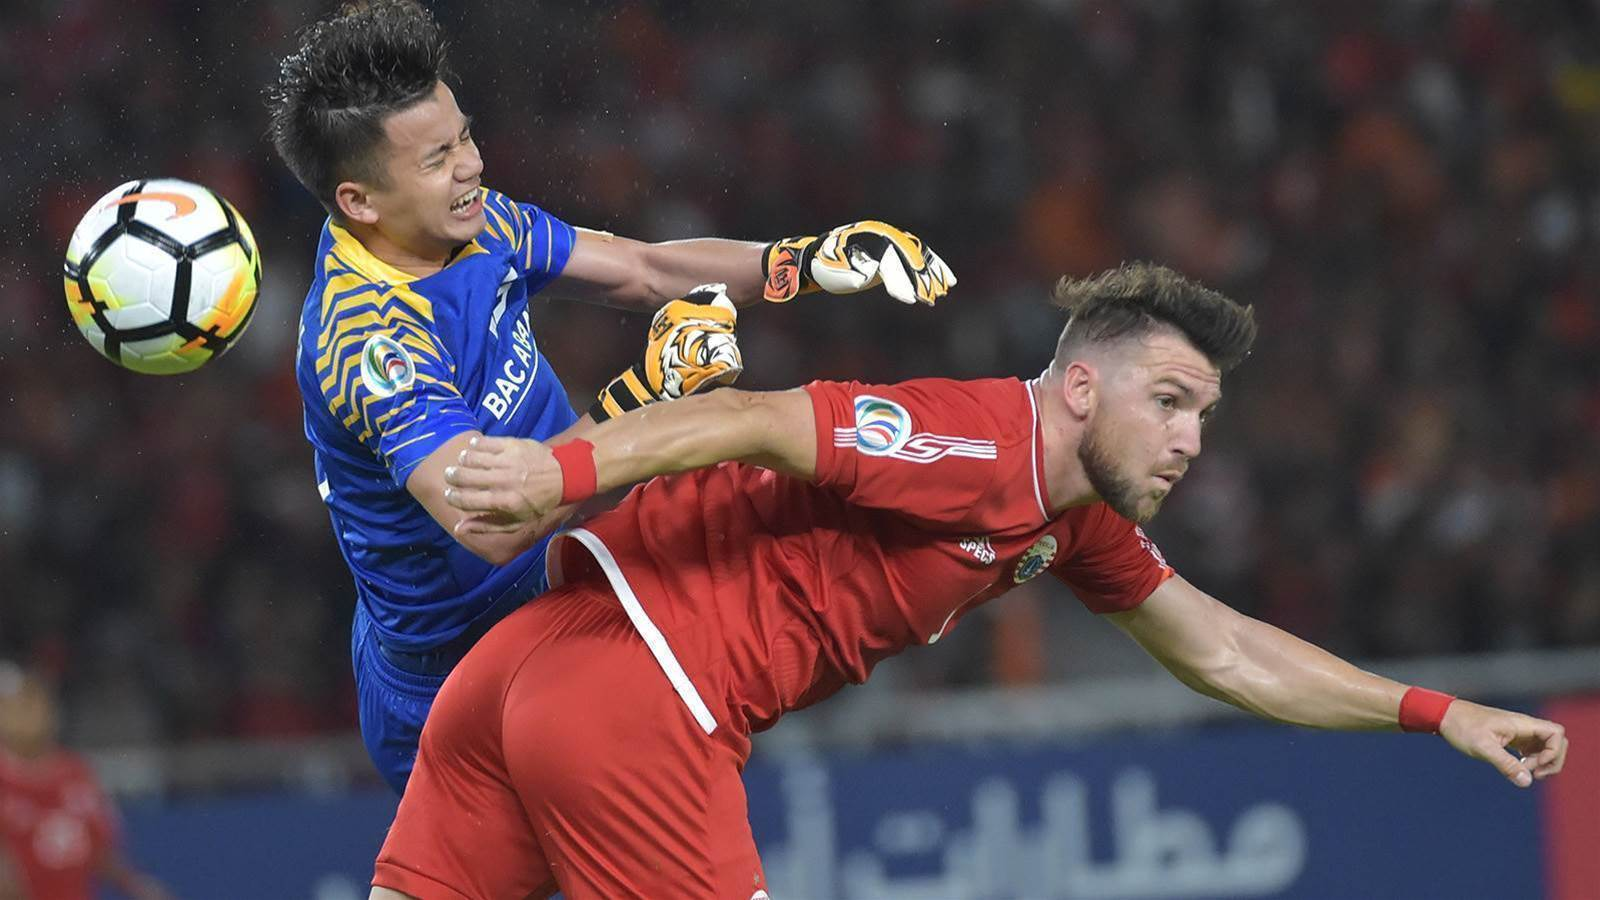 Persija star arrested en route to Jets clash